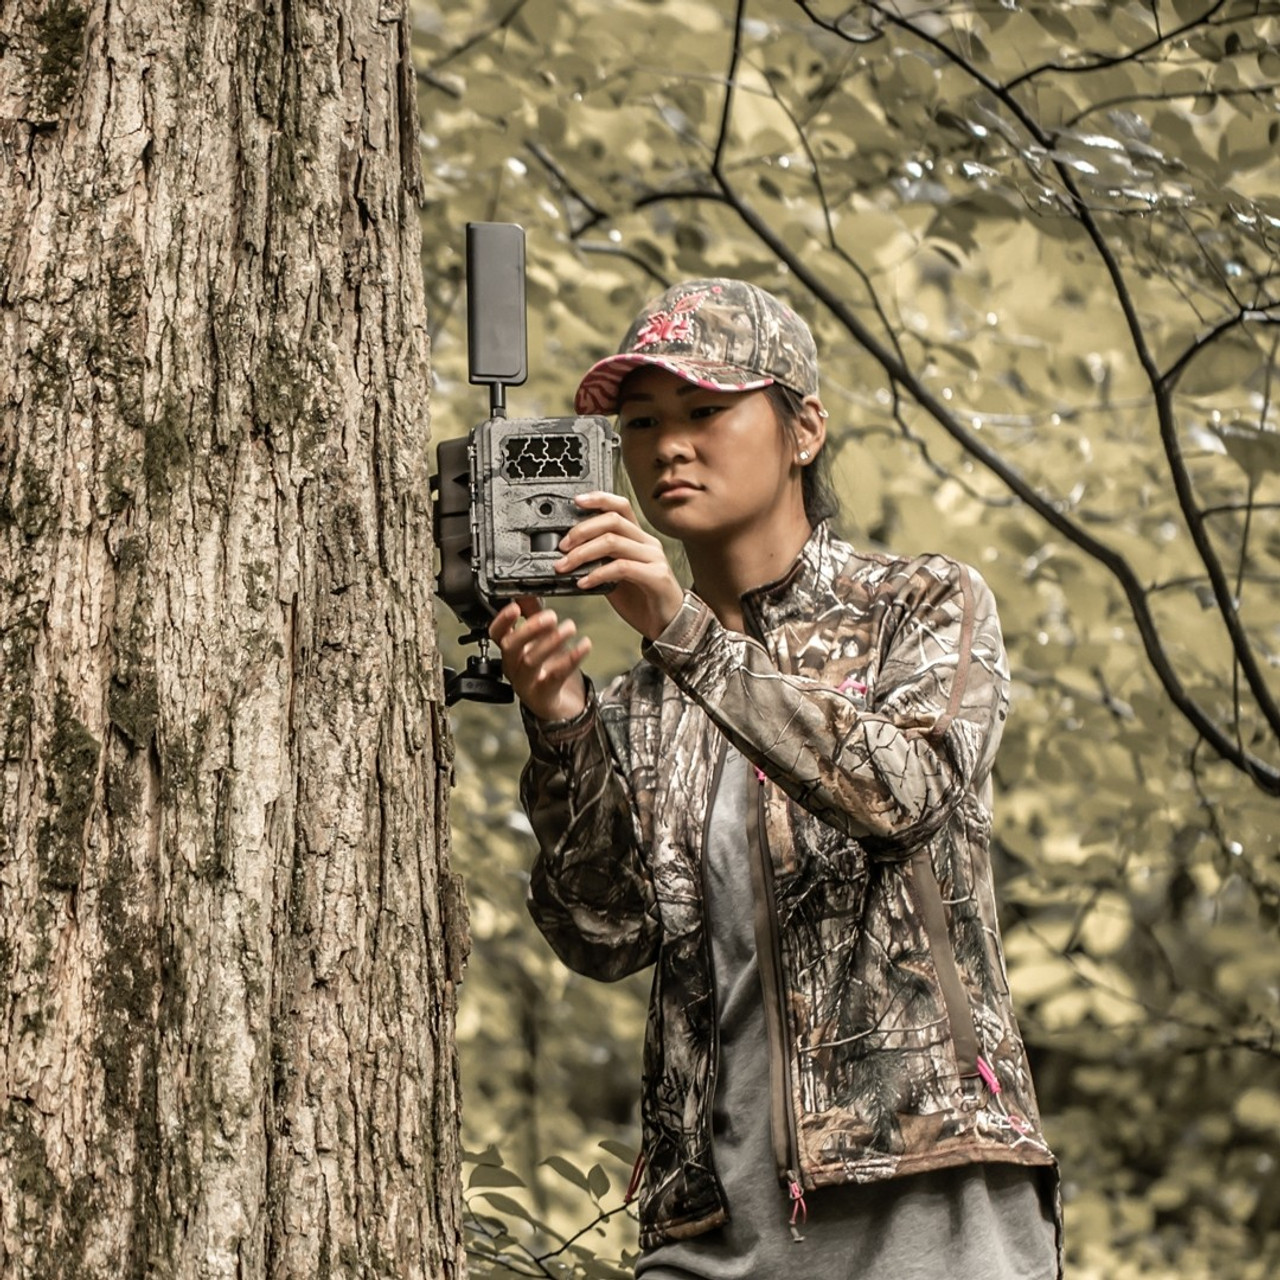 Setting Up Spartan Trail Cameras